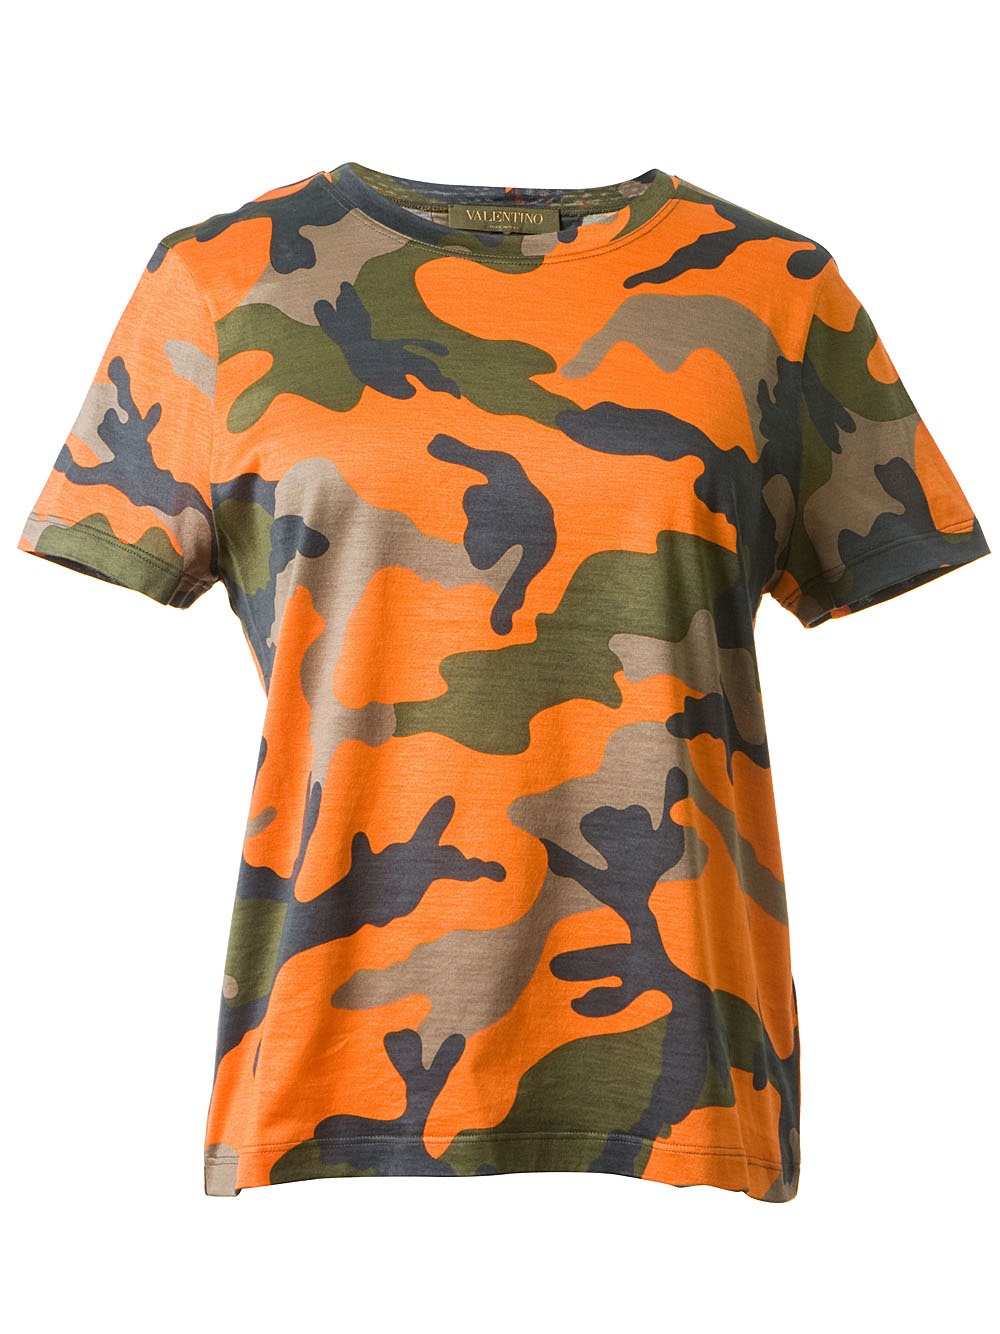 valentino camouflage print t shirt in orange lyst. Black Bedroom Furniture Sets. Home Design Ideas